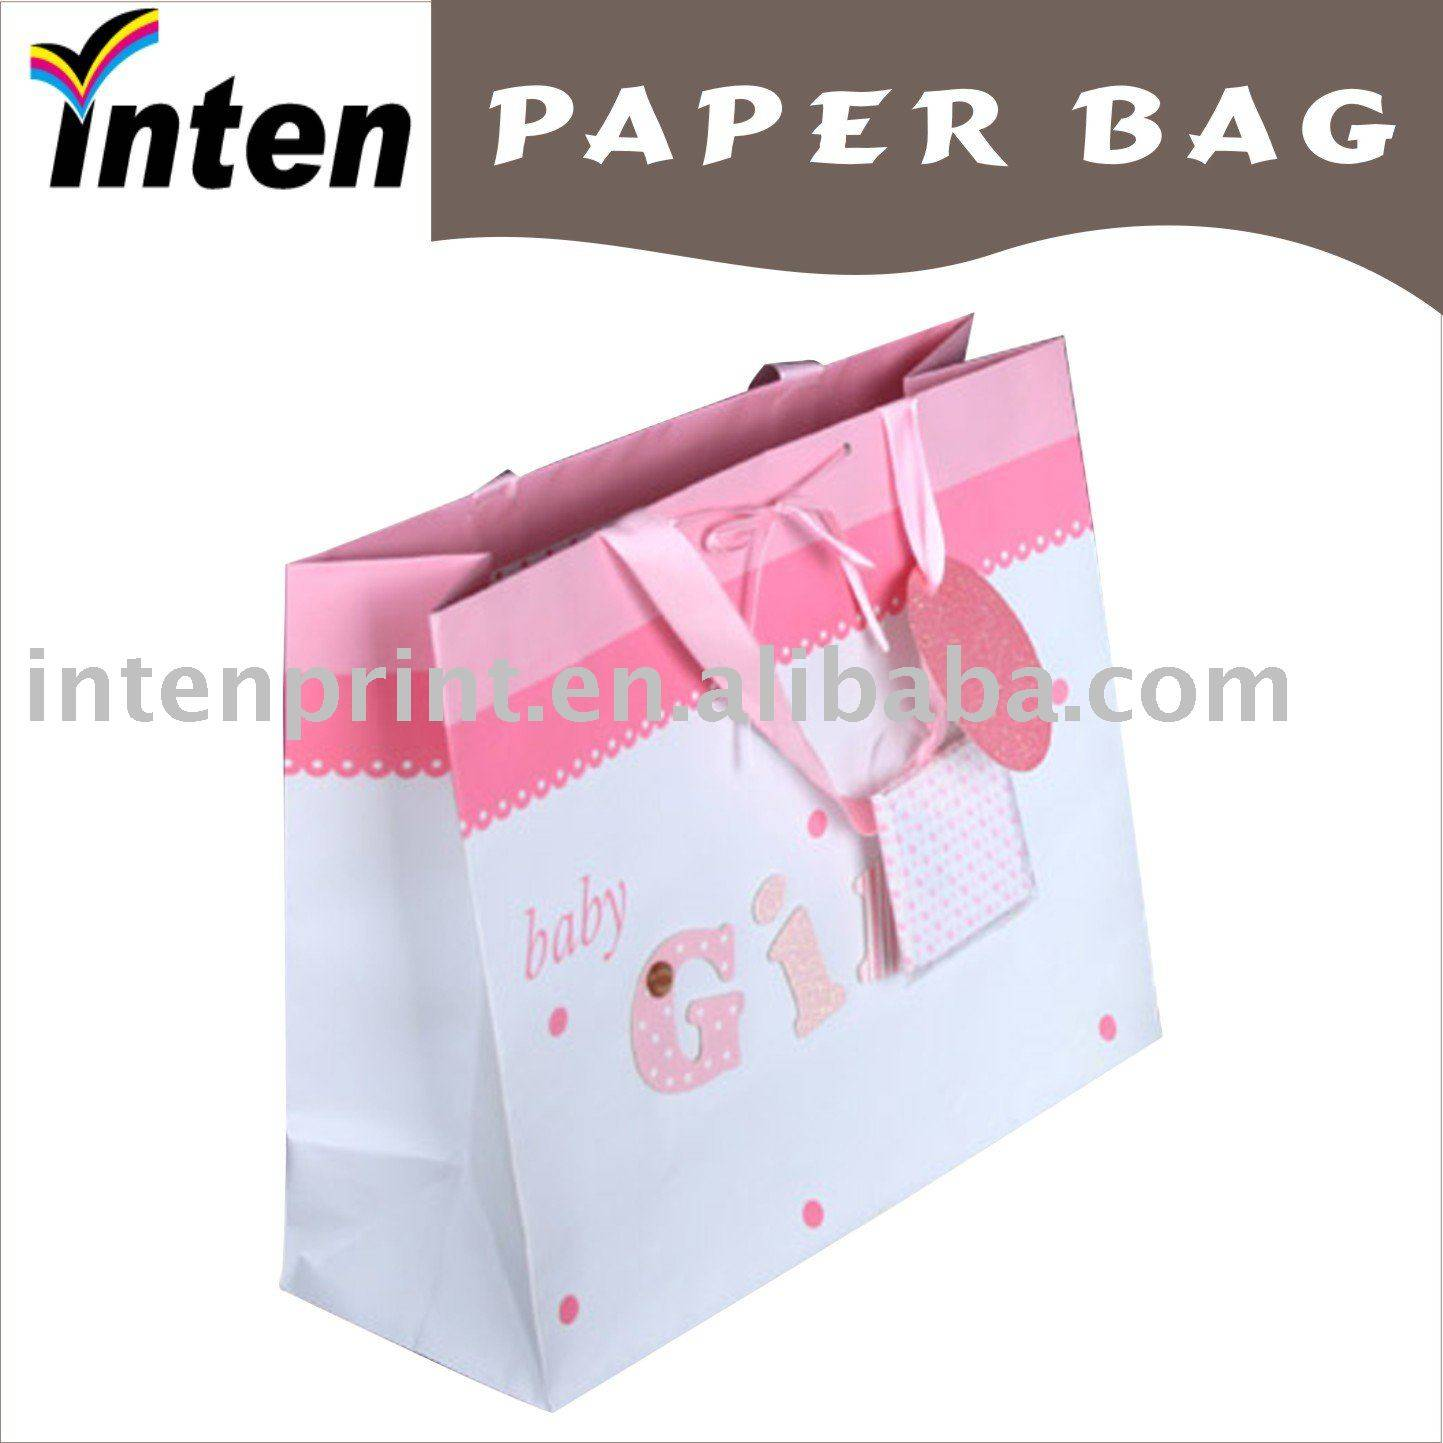 Wrapping Fashionable Gift Paper Bag